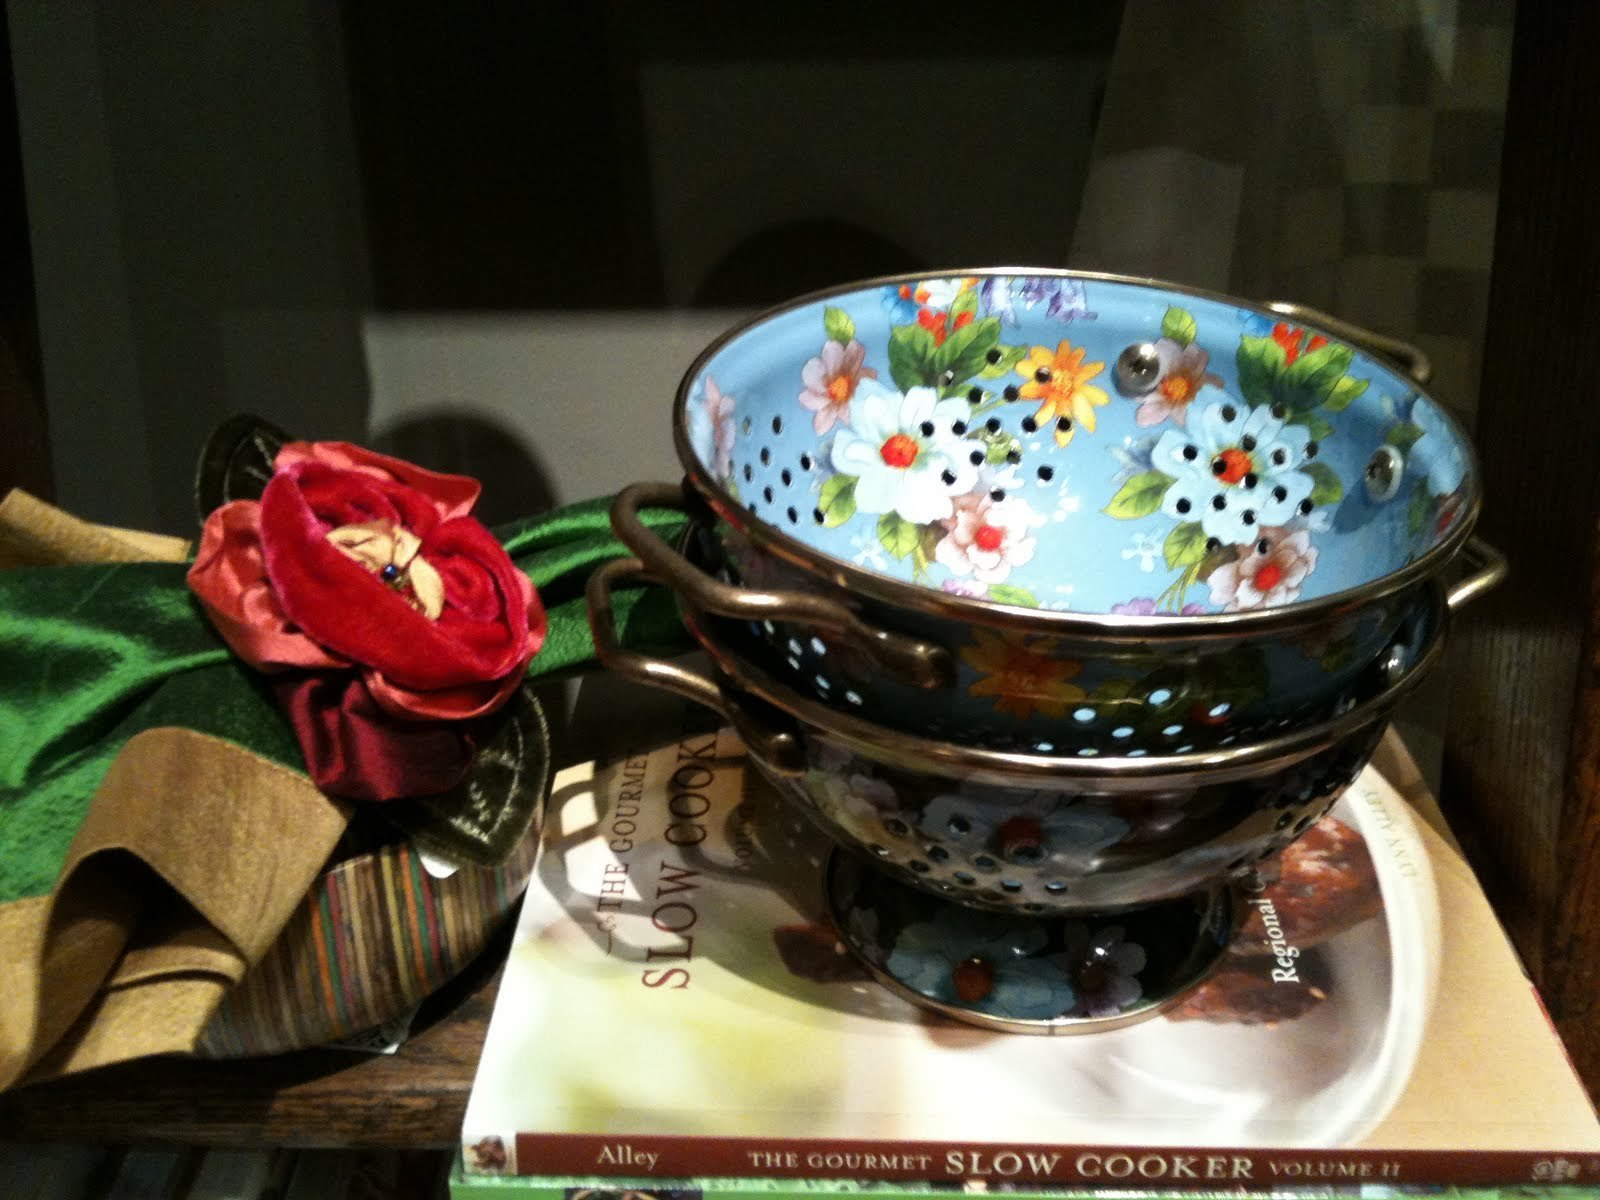 Fashionably petite holiday gift ideas from mackenzie childs for Mackenzie childs kitchen ideas